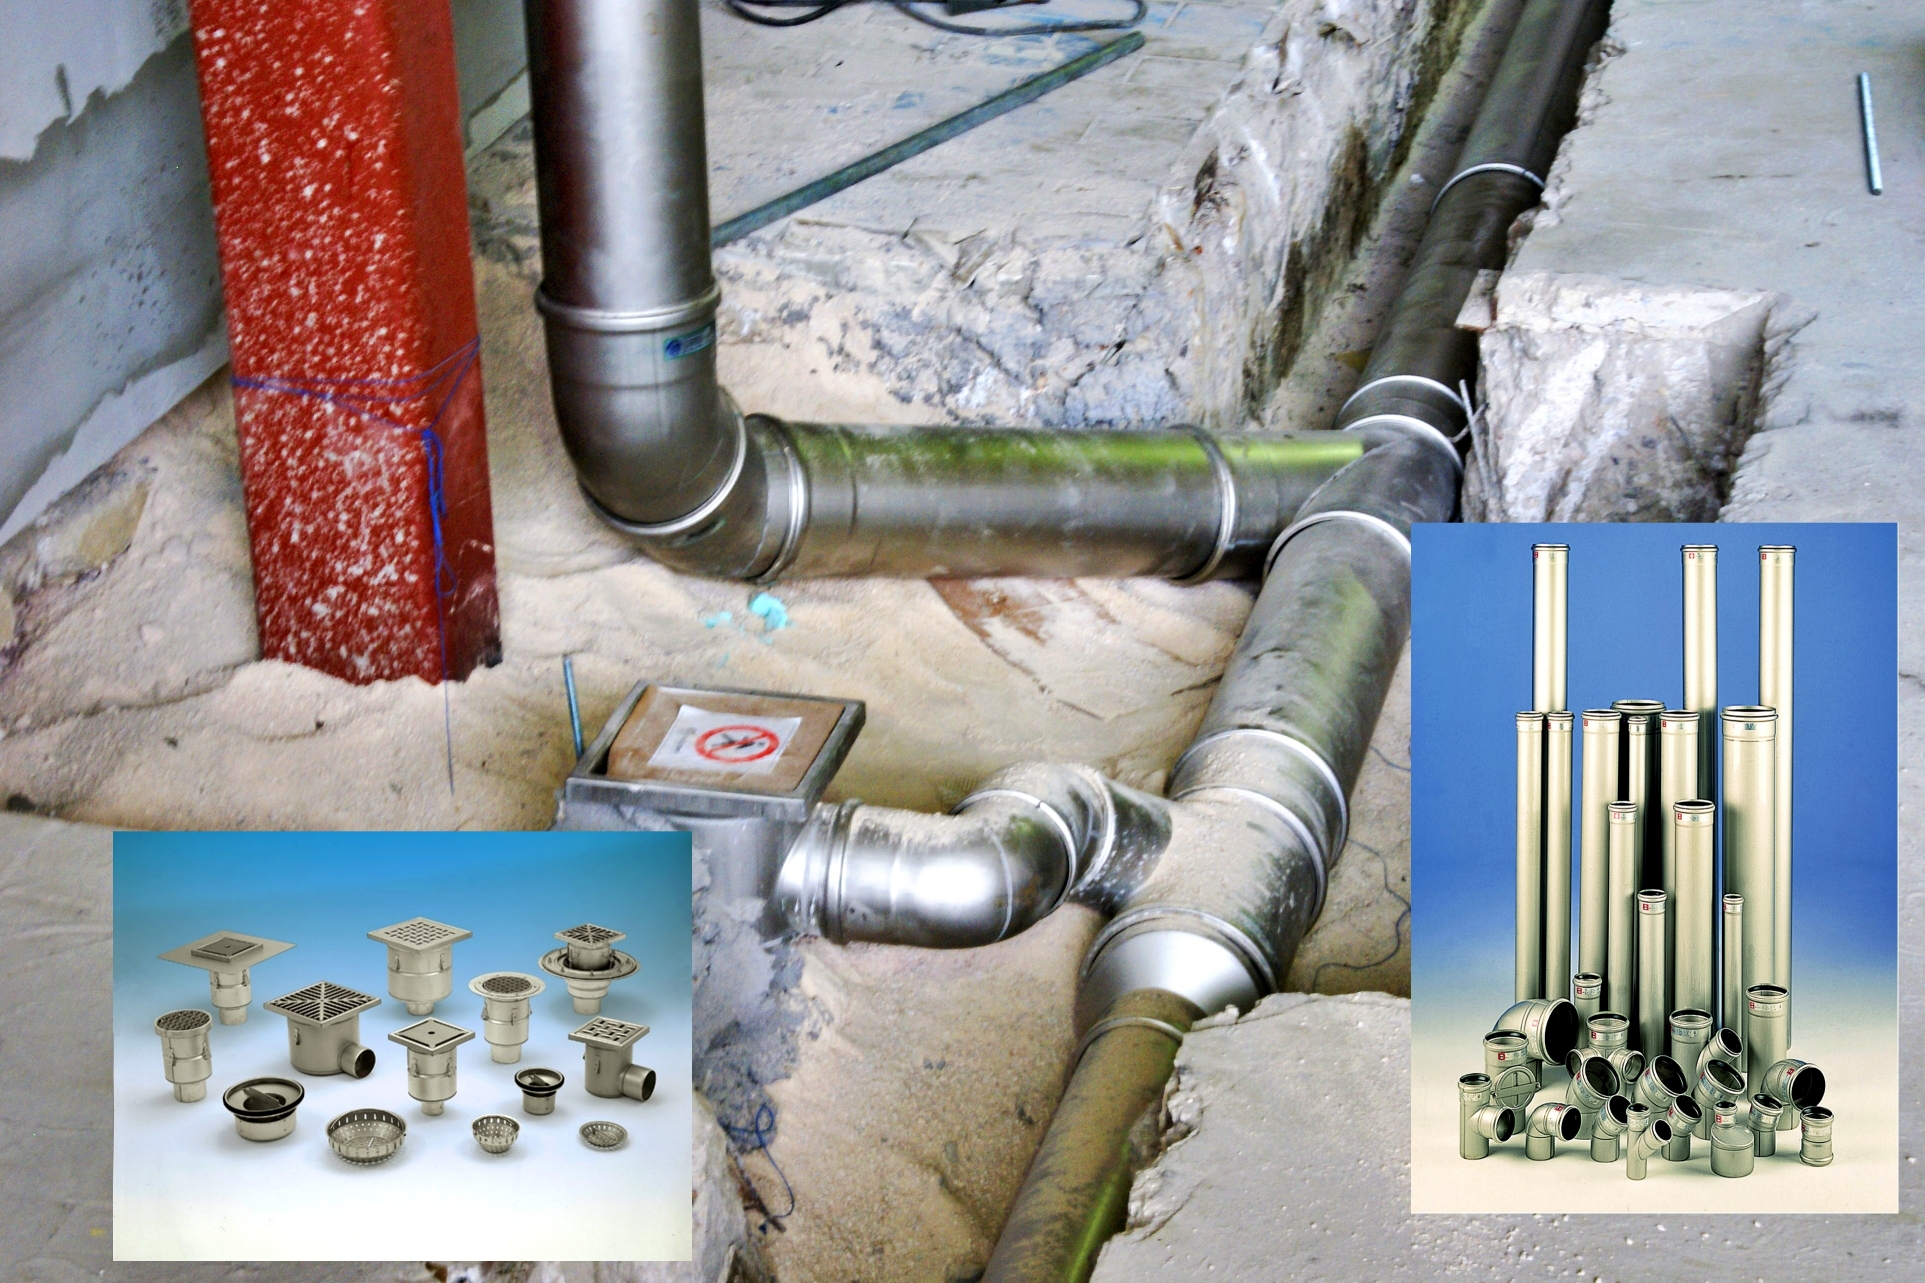 blucher_stainless_steel_drainage_pipes_unilever_rentis